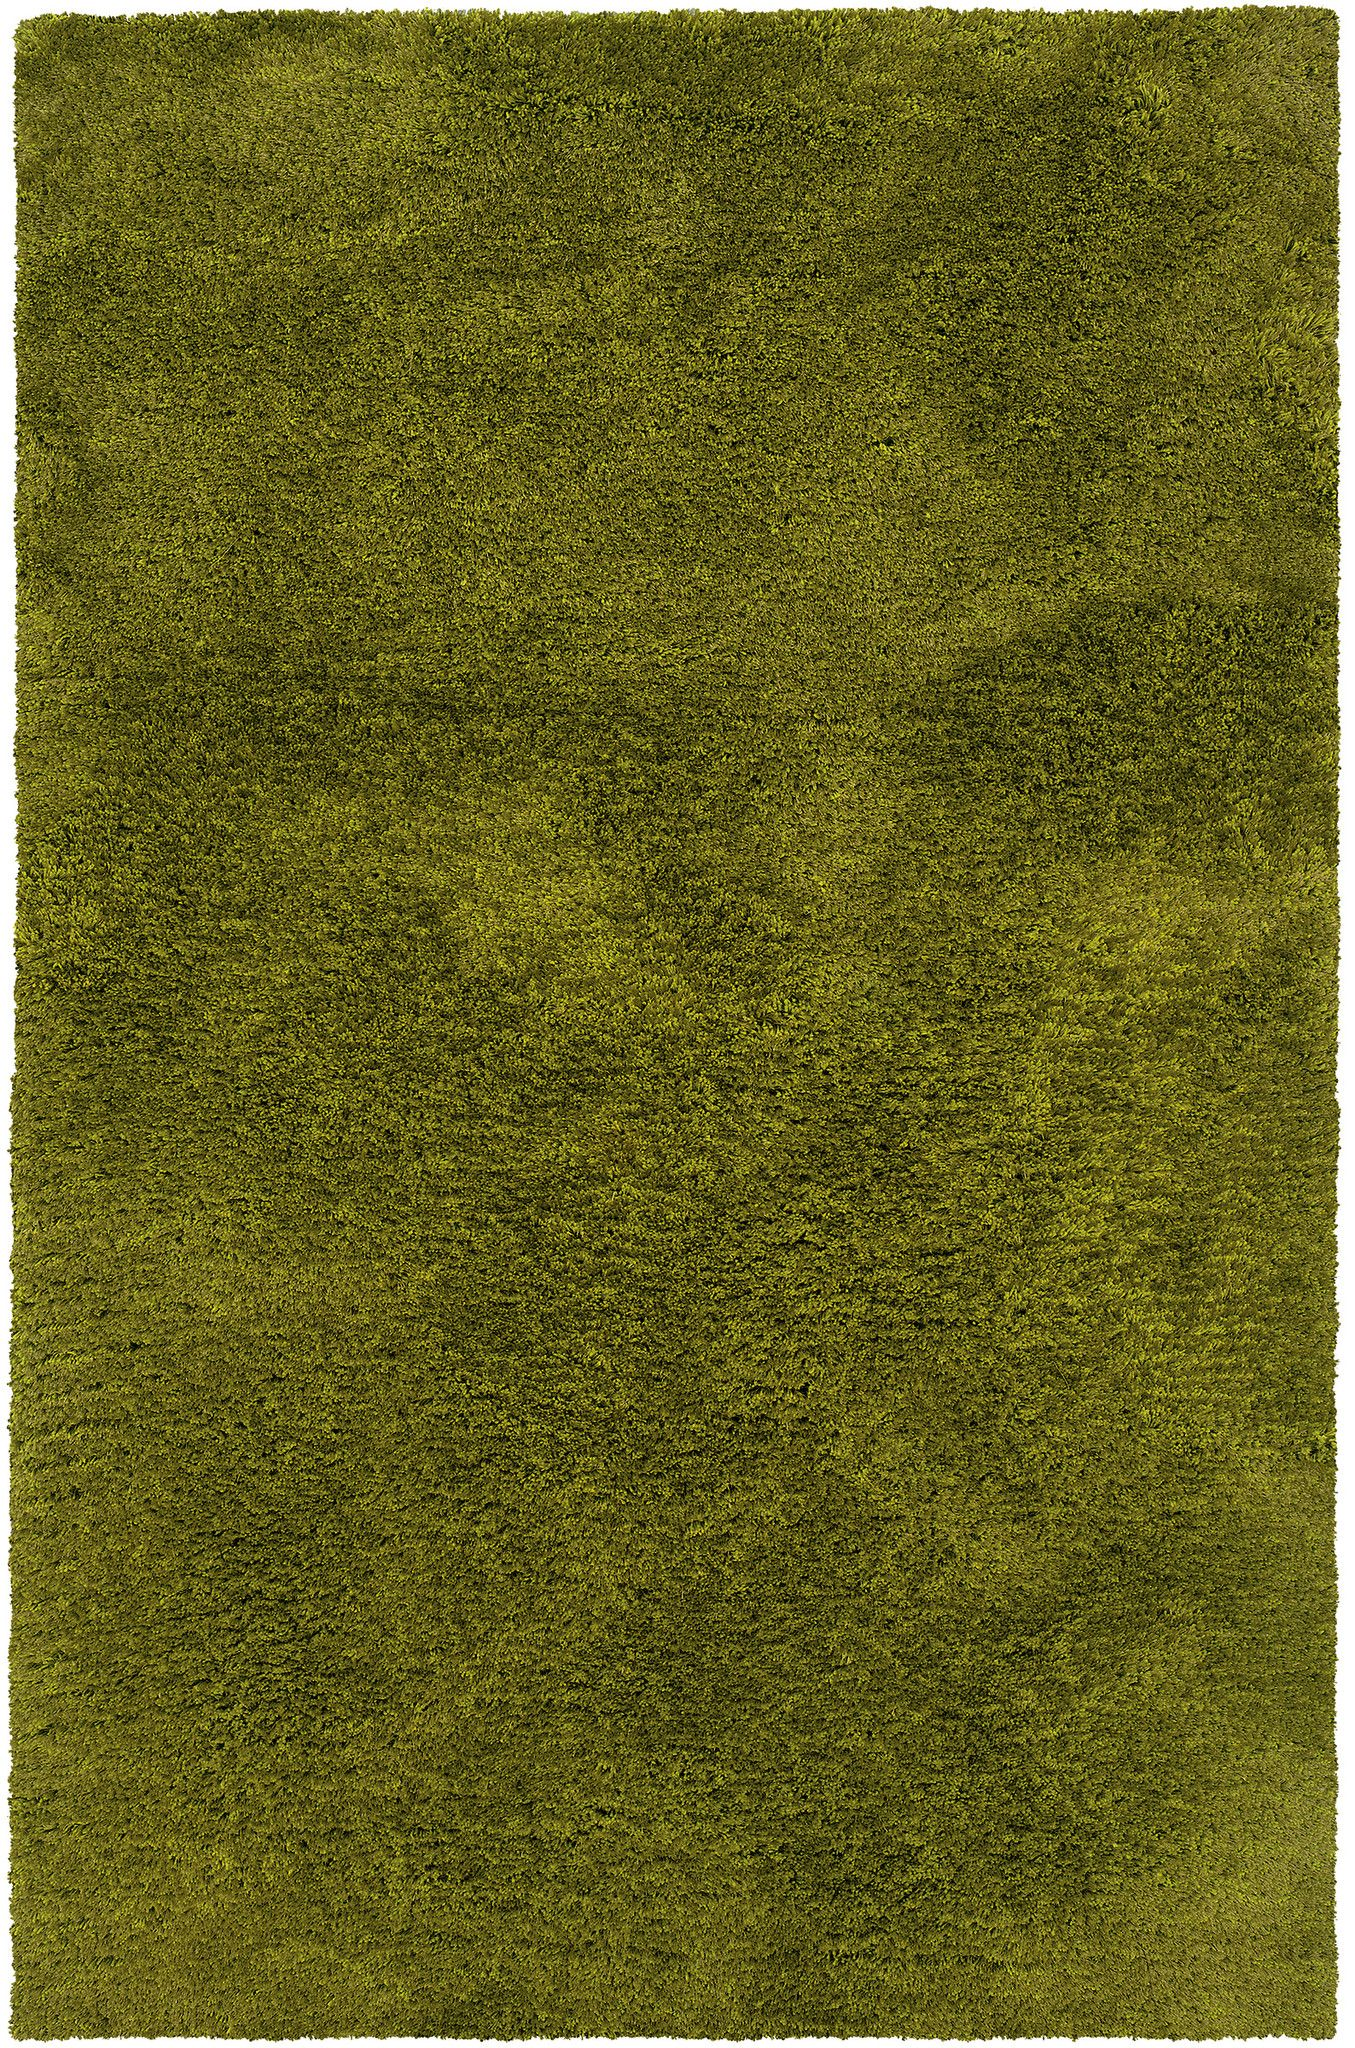 olive culture products cit monet city rug stunning green